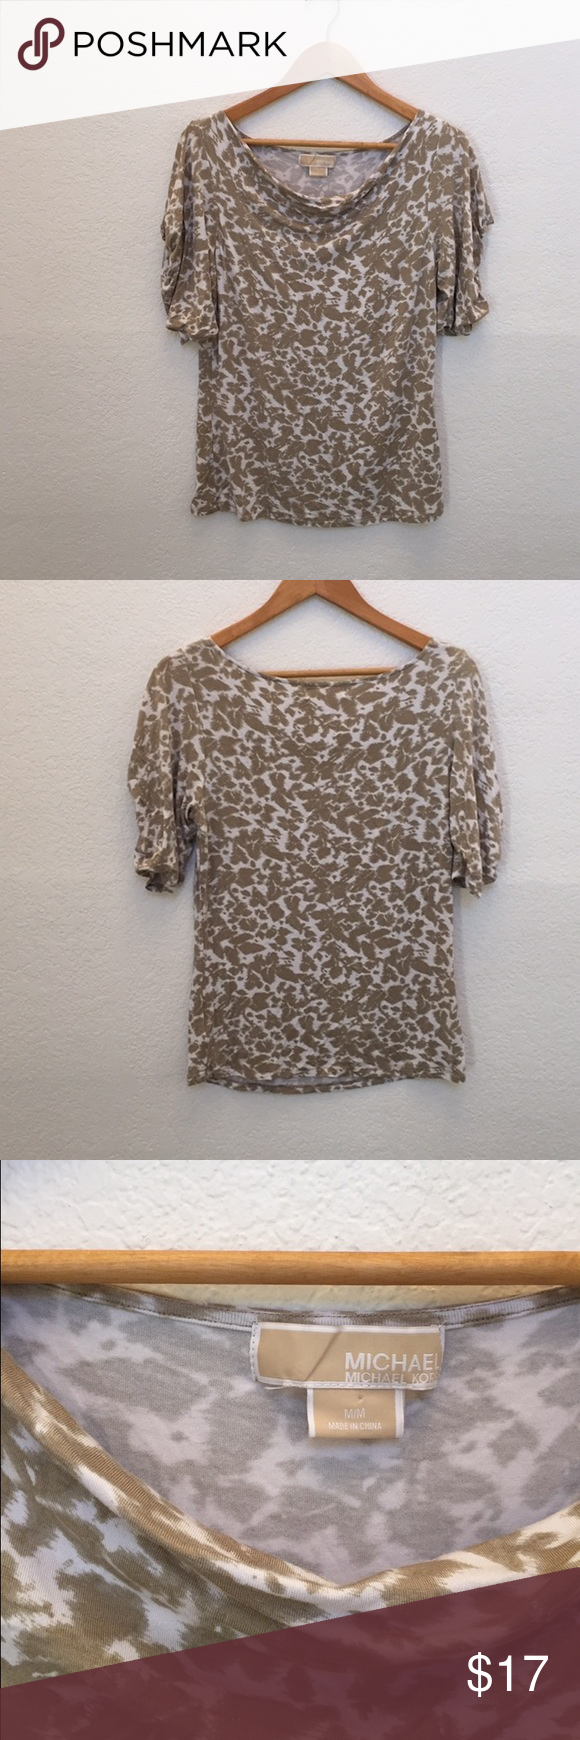 Michael Michael kors cowl neck print top In good used condition. Rayon spandex MICHAEL Michael Kors Tops